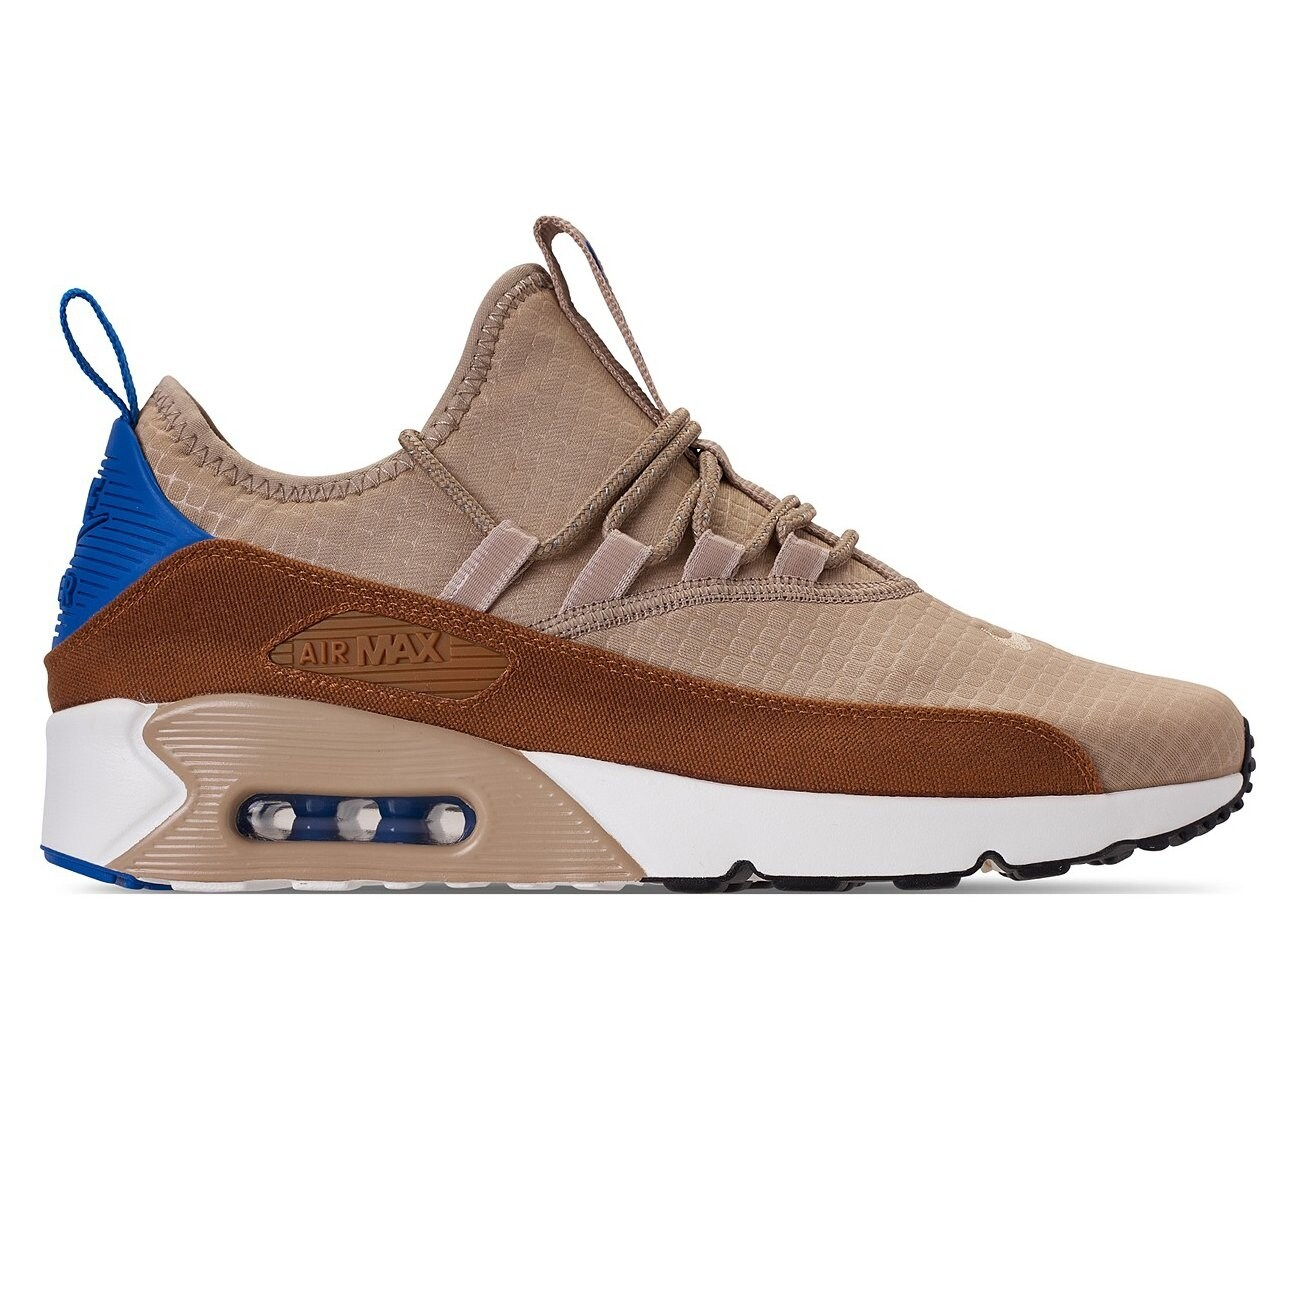 Nike Men's Air Max 90 EZ Dessert Ochre (AO1745 700)